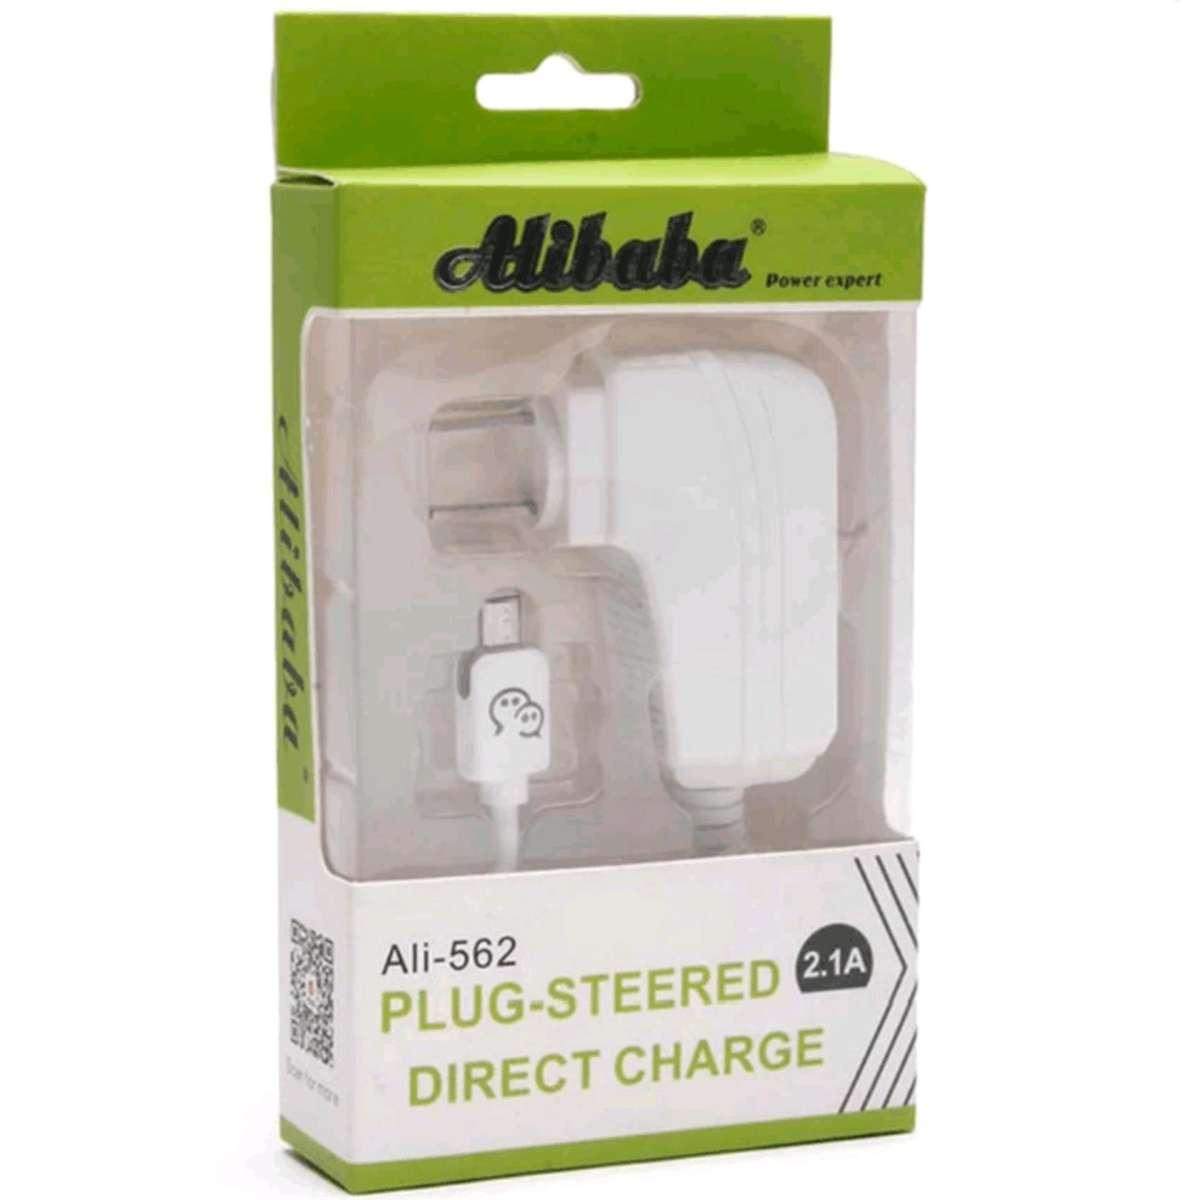 Usb Charger For Sale Travel Prices Brands Specs In Android Micro Cable Wiring Diagram Alibaba Ali 562 15m Fast Charging With Led Light V8